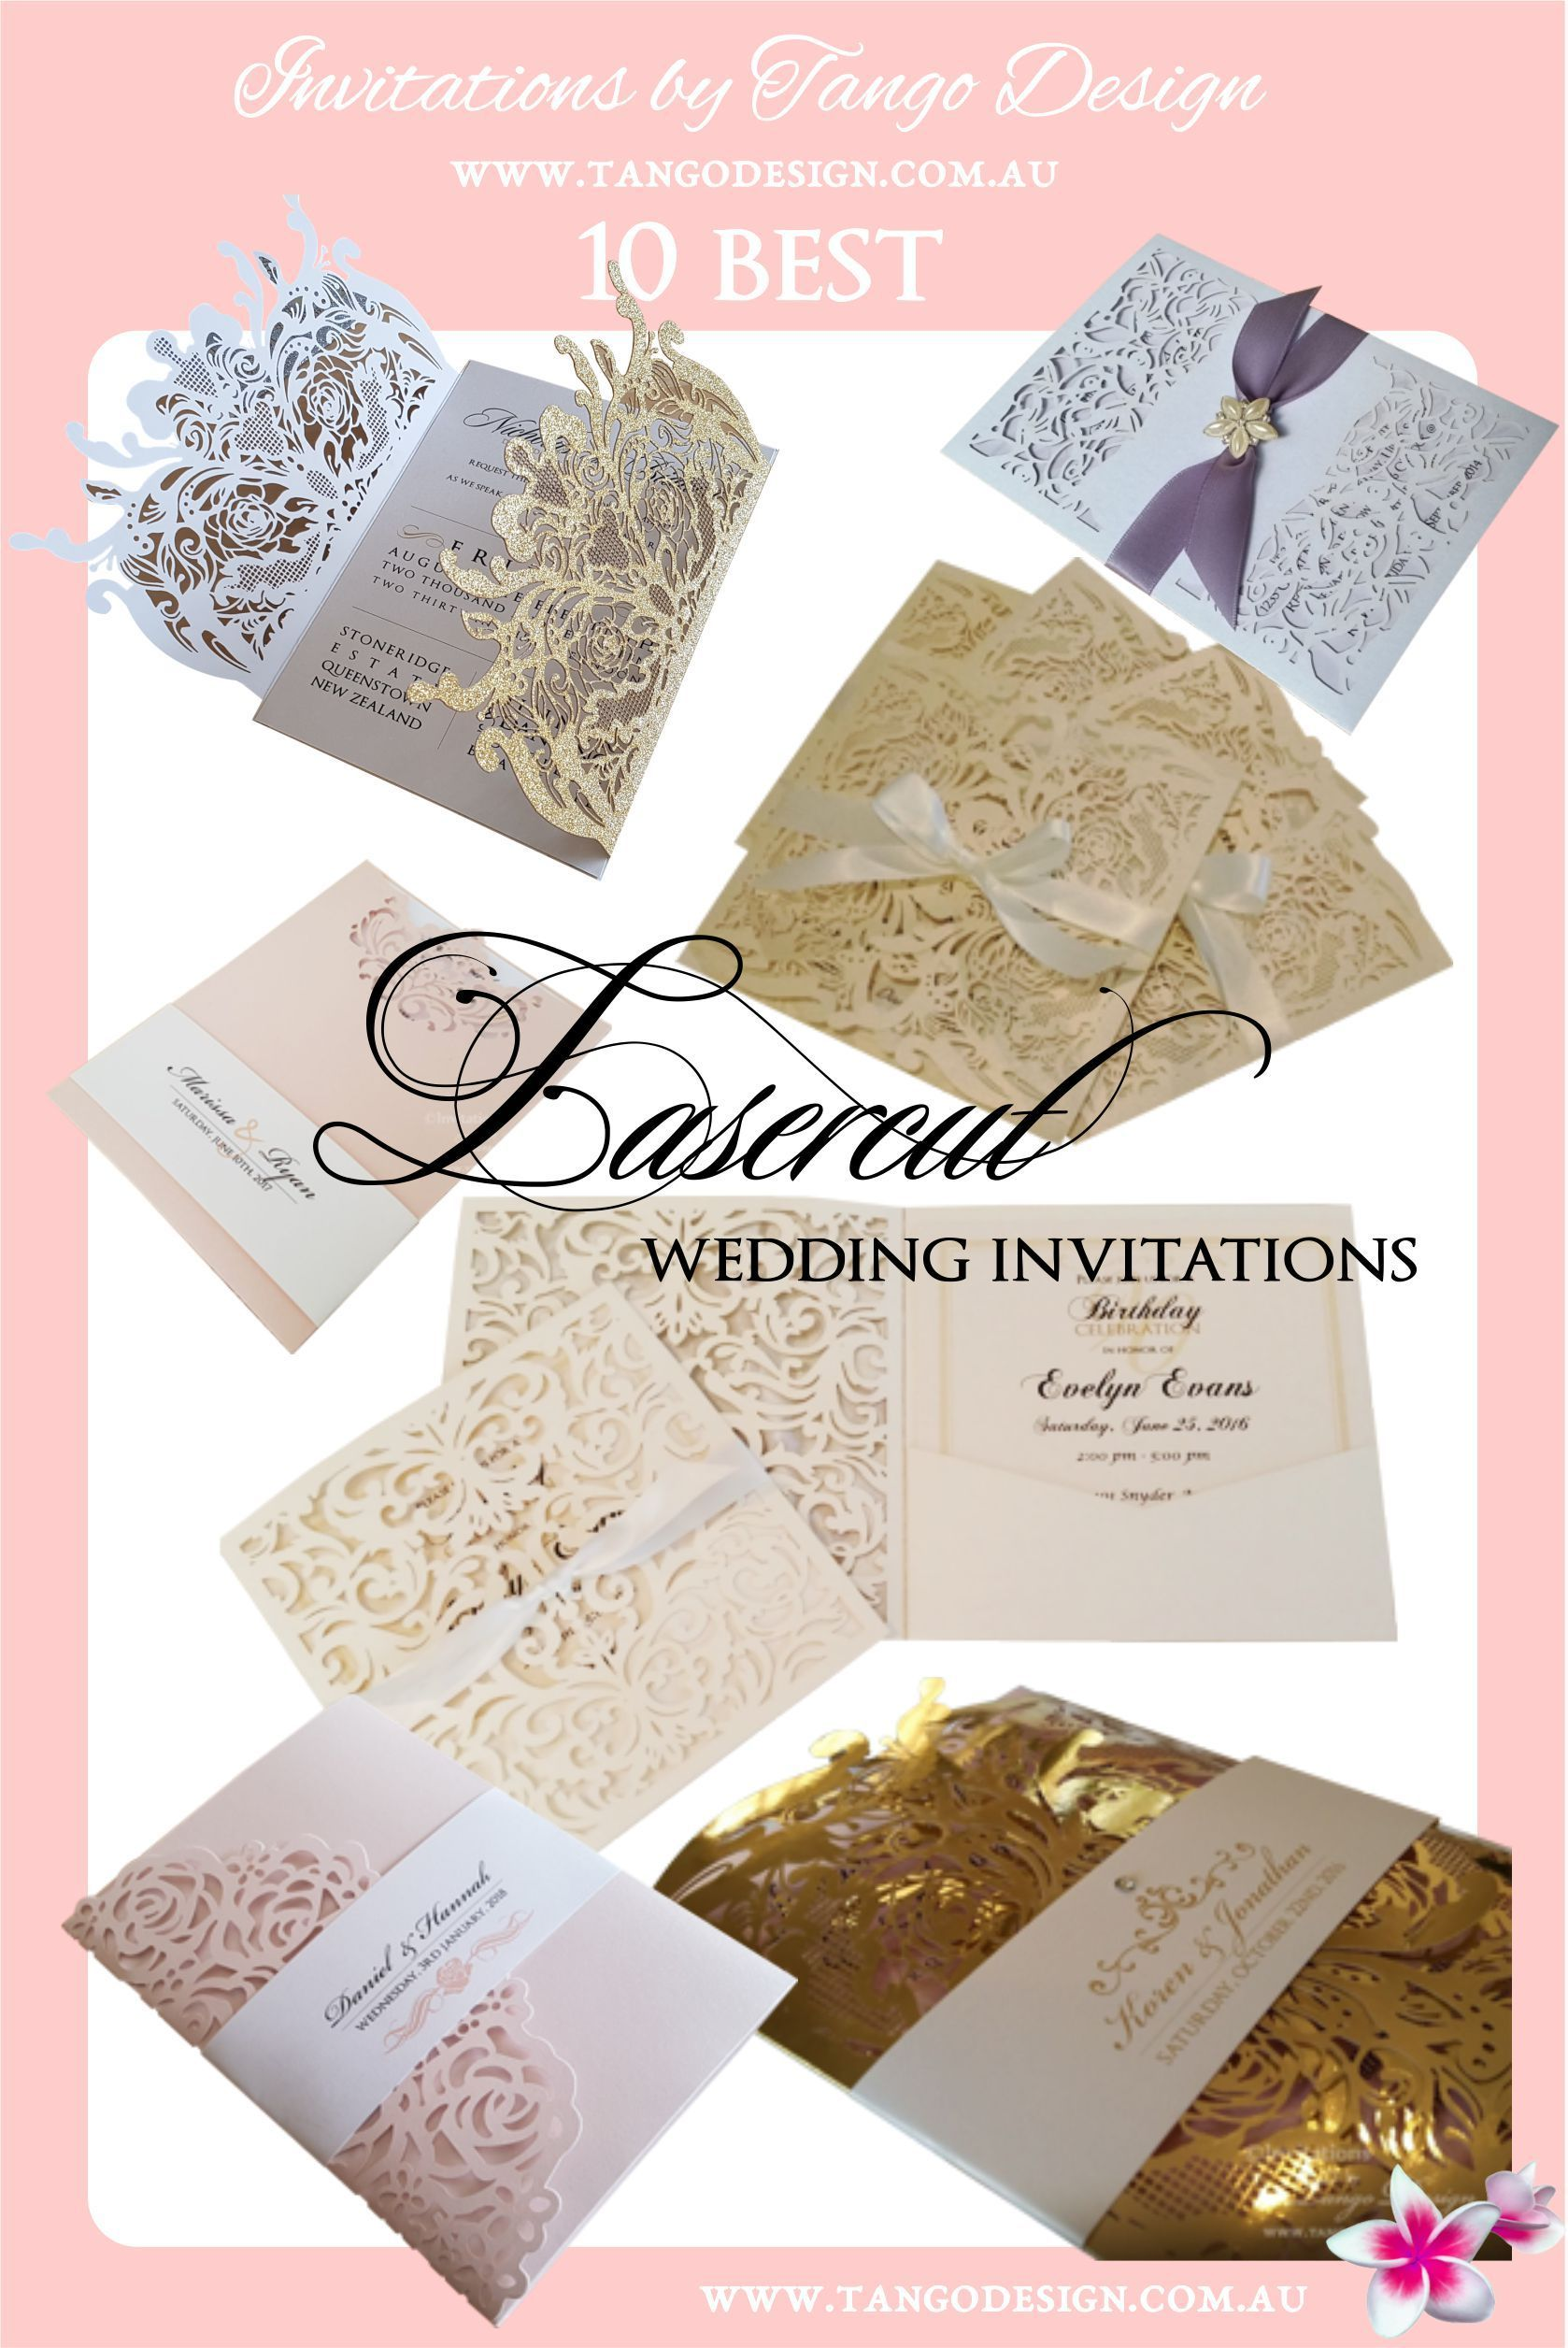 Some of our amazing wedding invitations, custom made for each ...